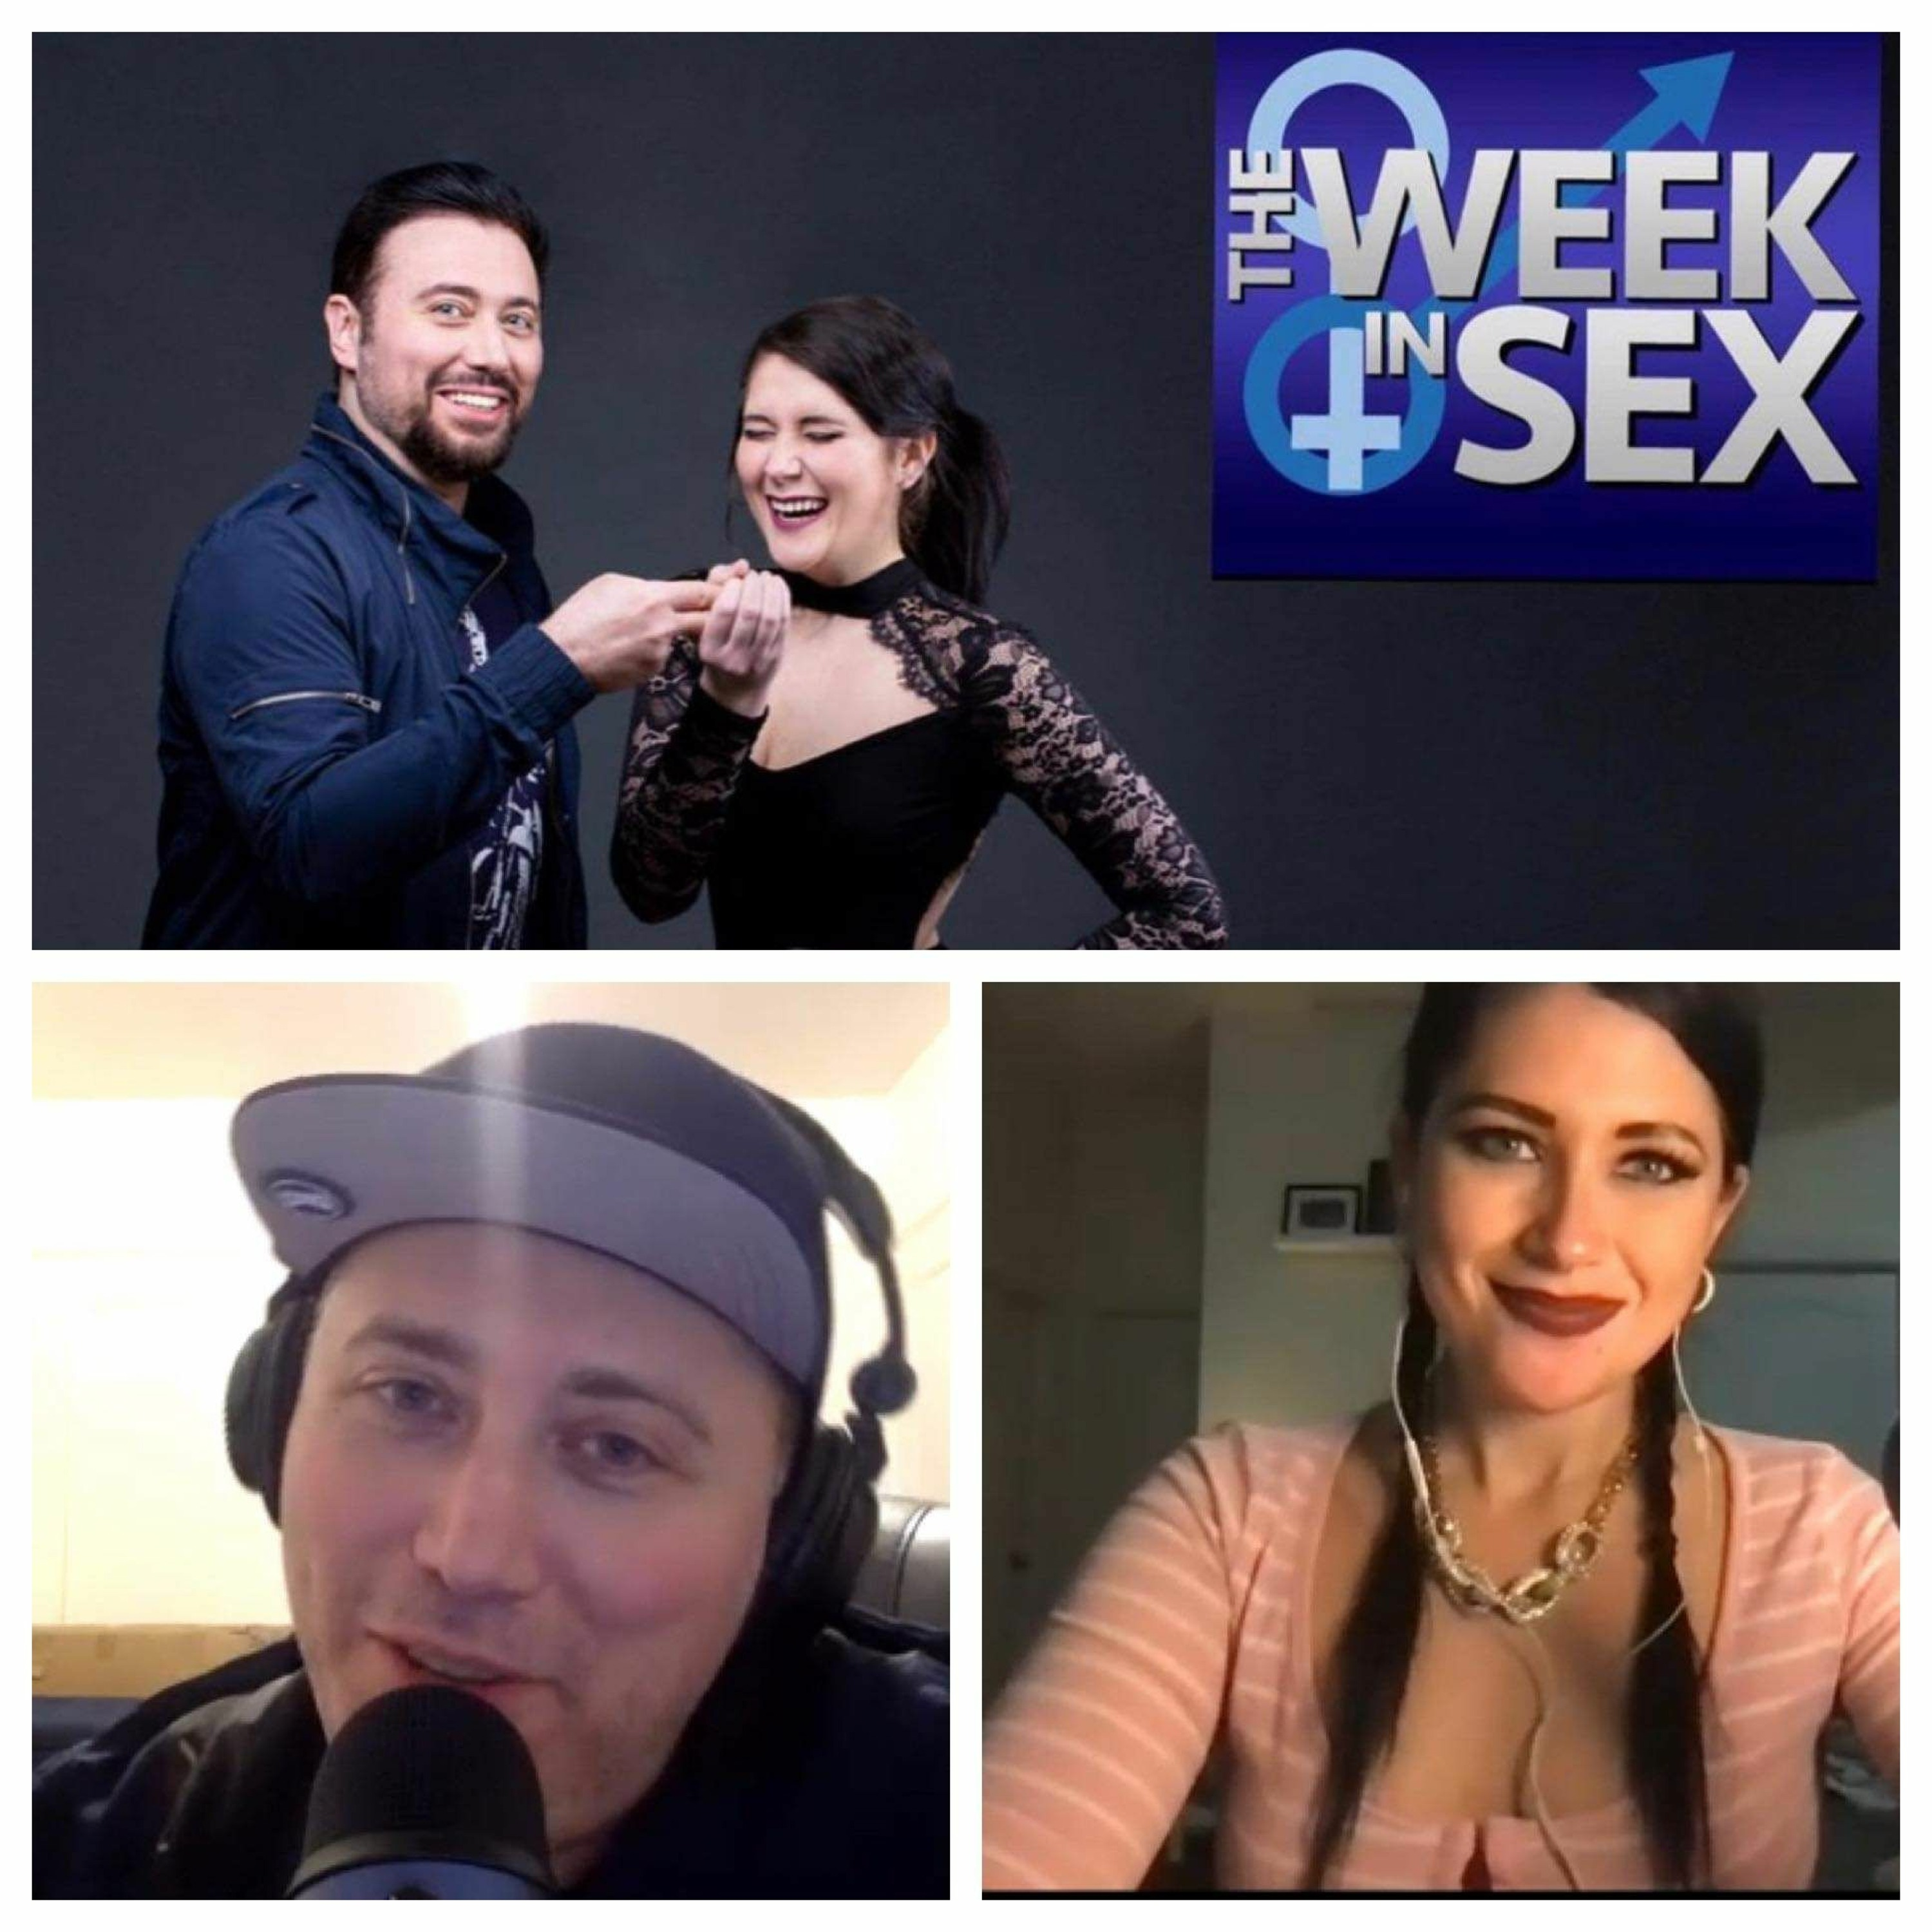 The Week In Sex - S6 E5 Keanu Starts an OnlyFans/Allan Is Afraid of the World